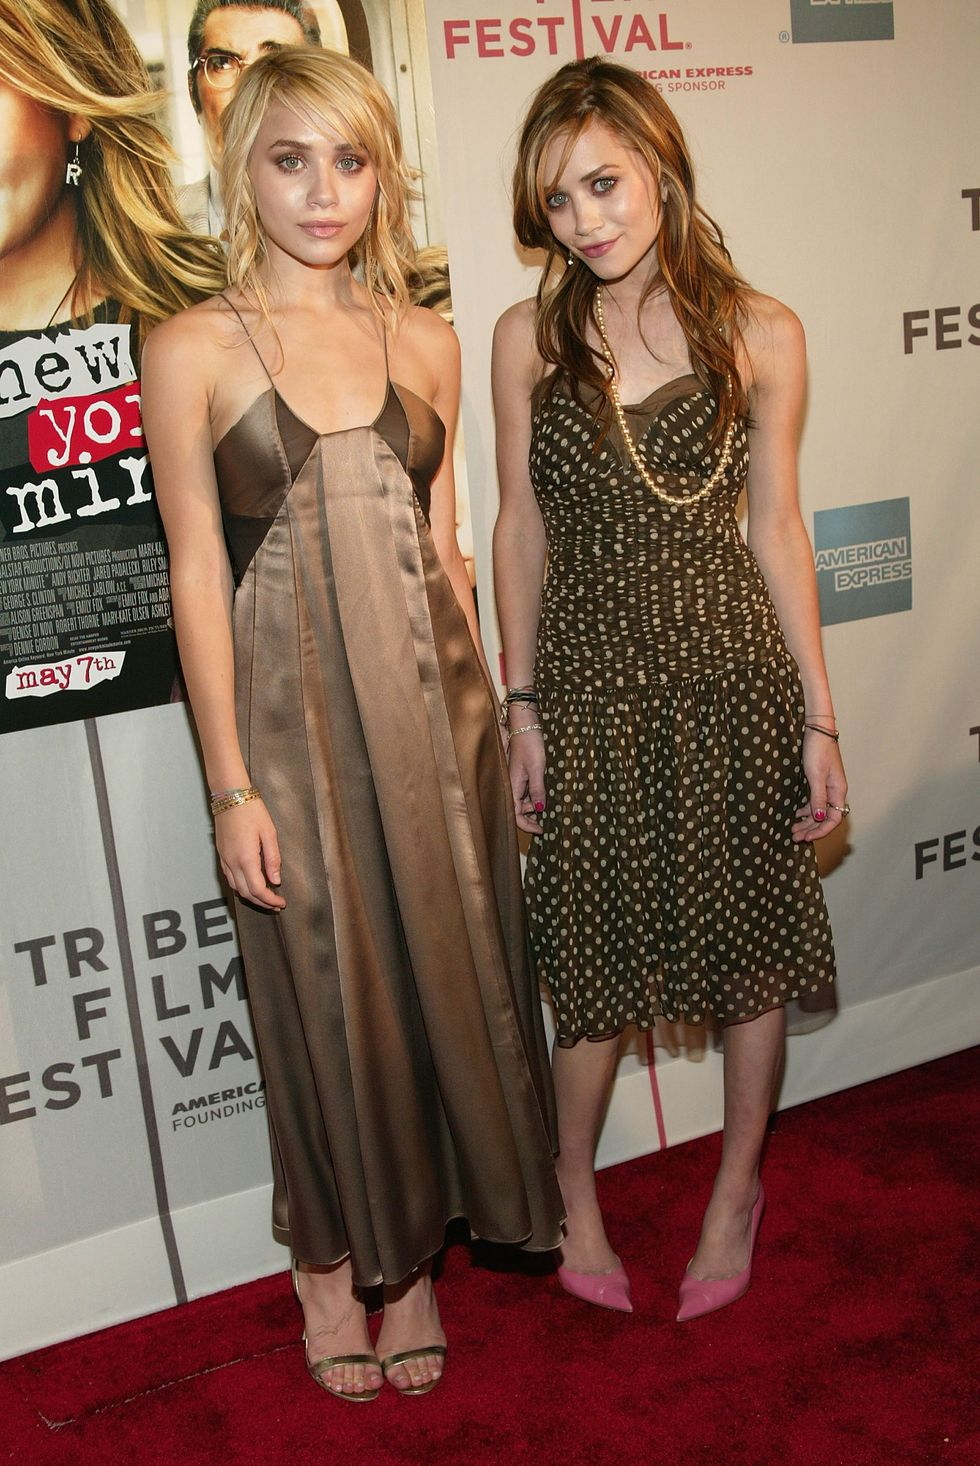 May 4, 2004 For the Tribeca Film Festival premiere of New York Minute, Ashley wore another long satin dress. This time, Mary-Kate opted for a fun polka-dotted dress with pink heels for a pop of color.